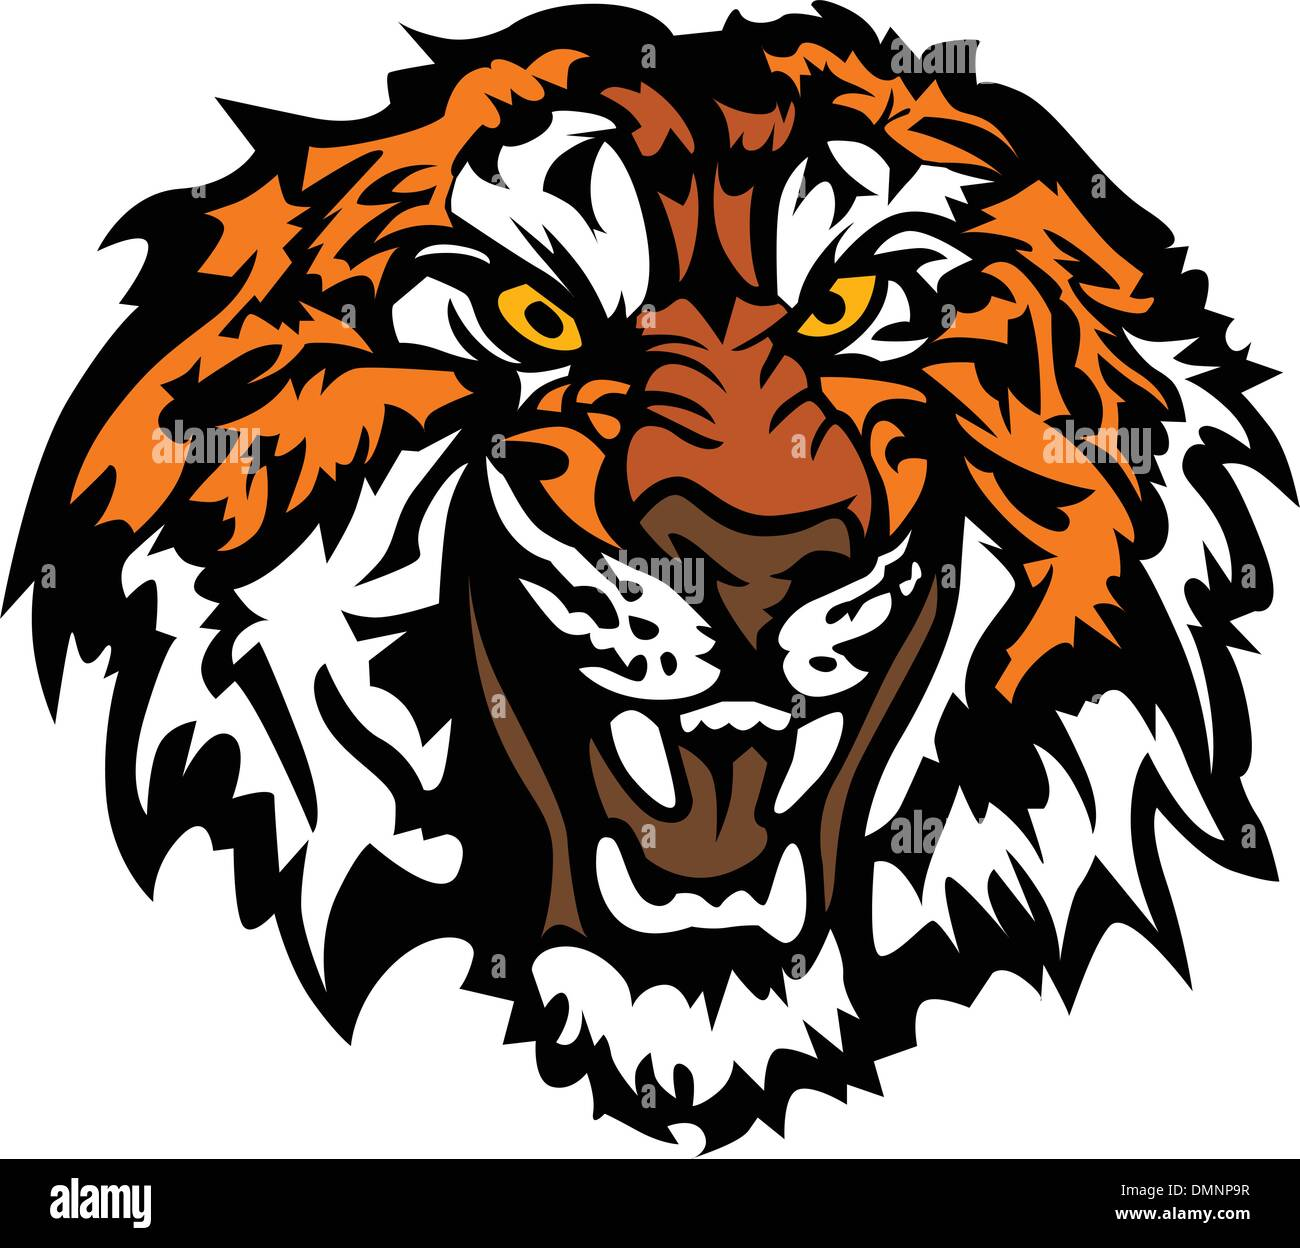 Tiger Head Snarling Graphic Mascot - Stock Image